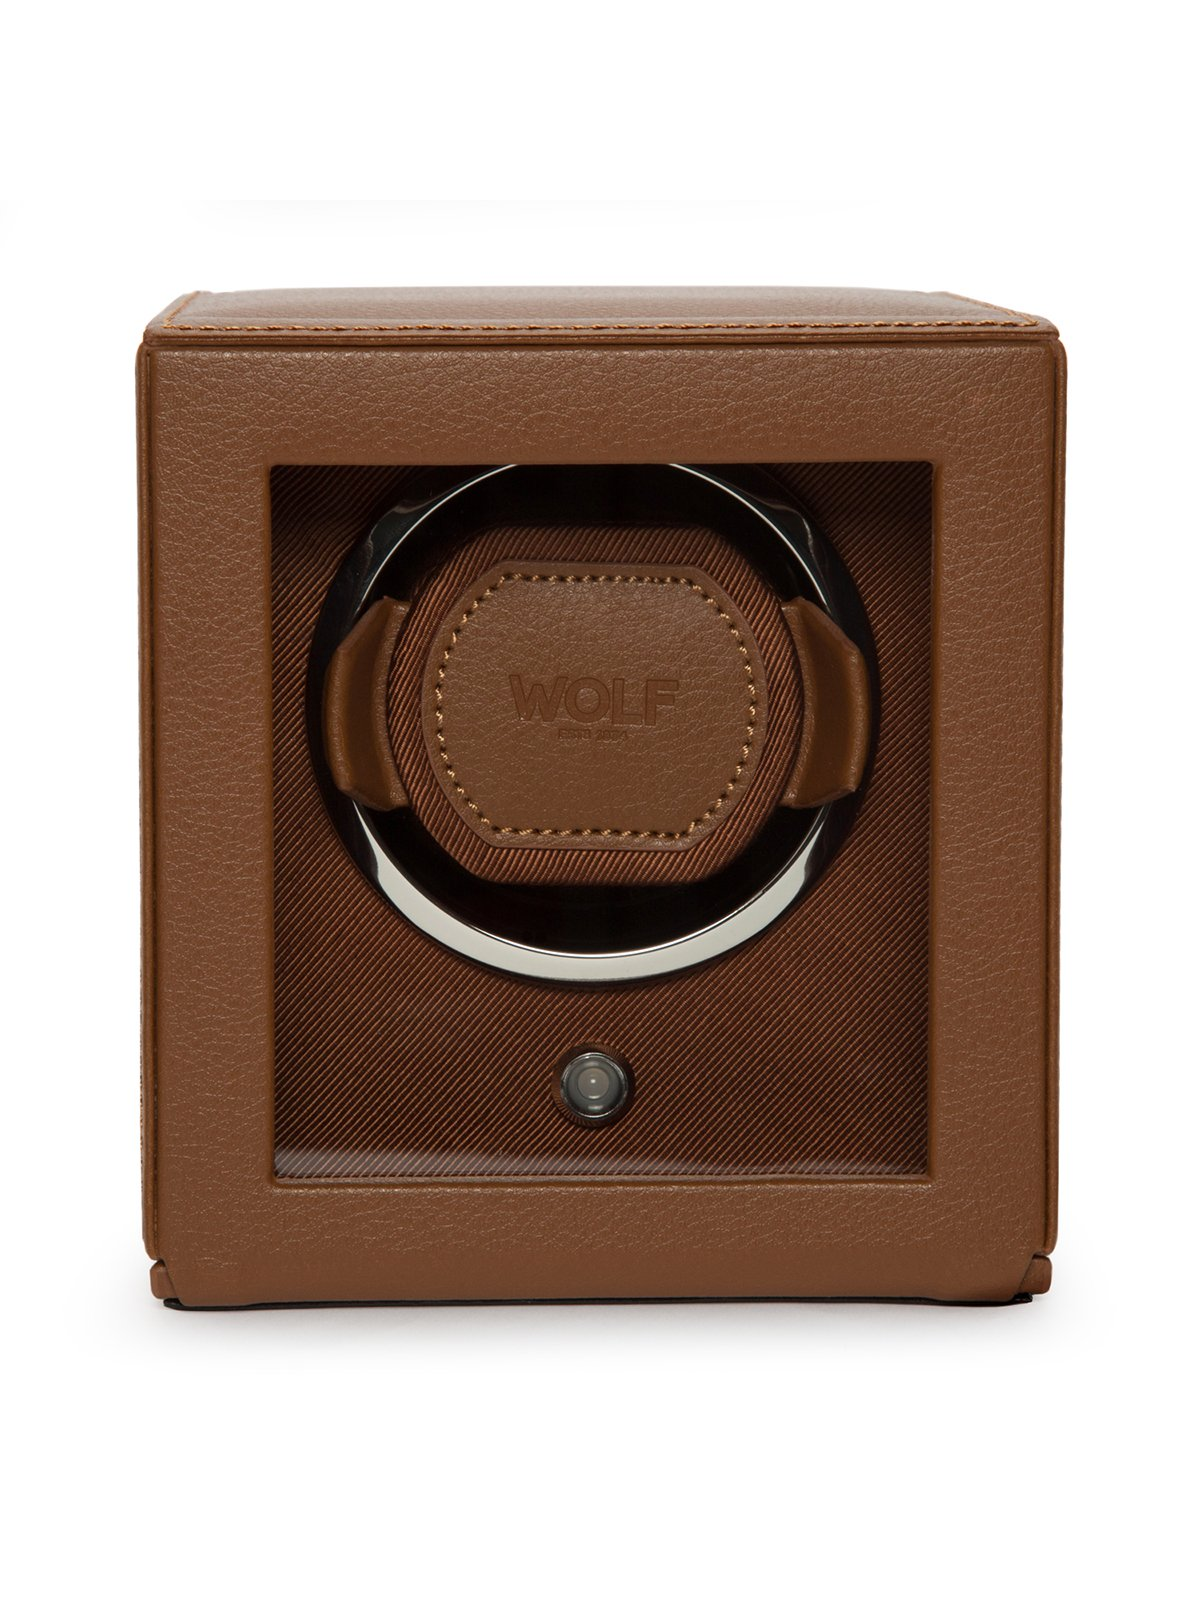 Wolf Cub Single Watch Winder with Cover in Cognac 461127